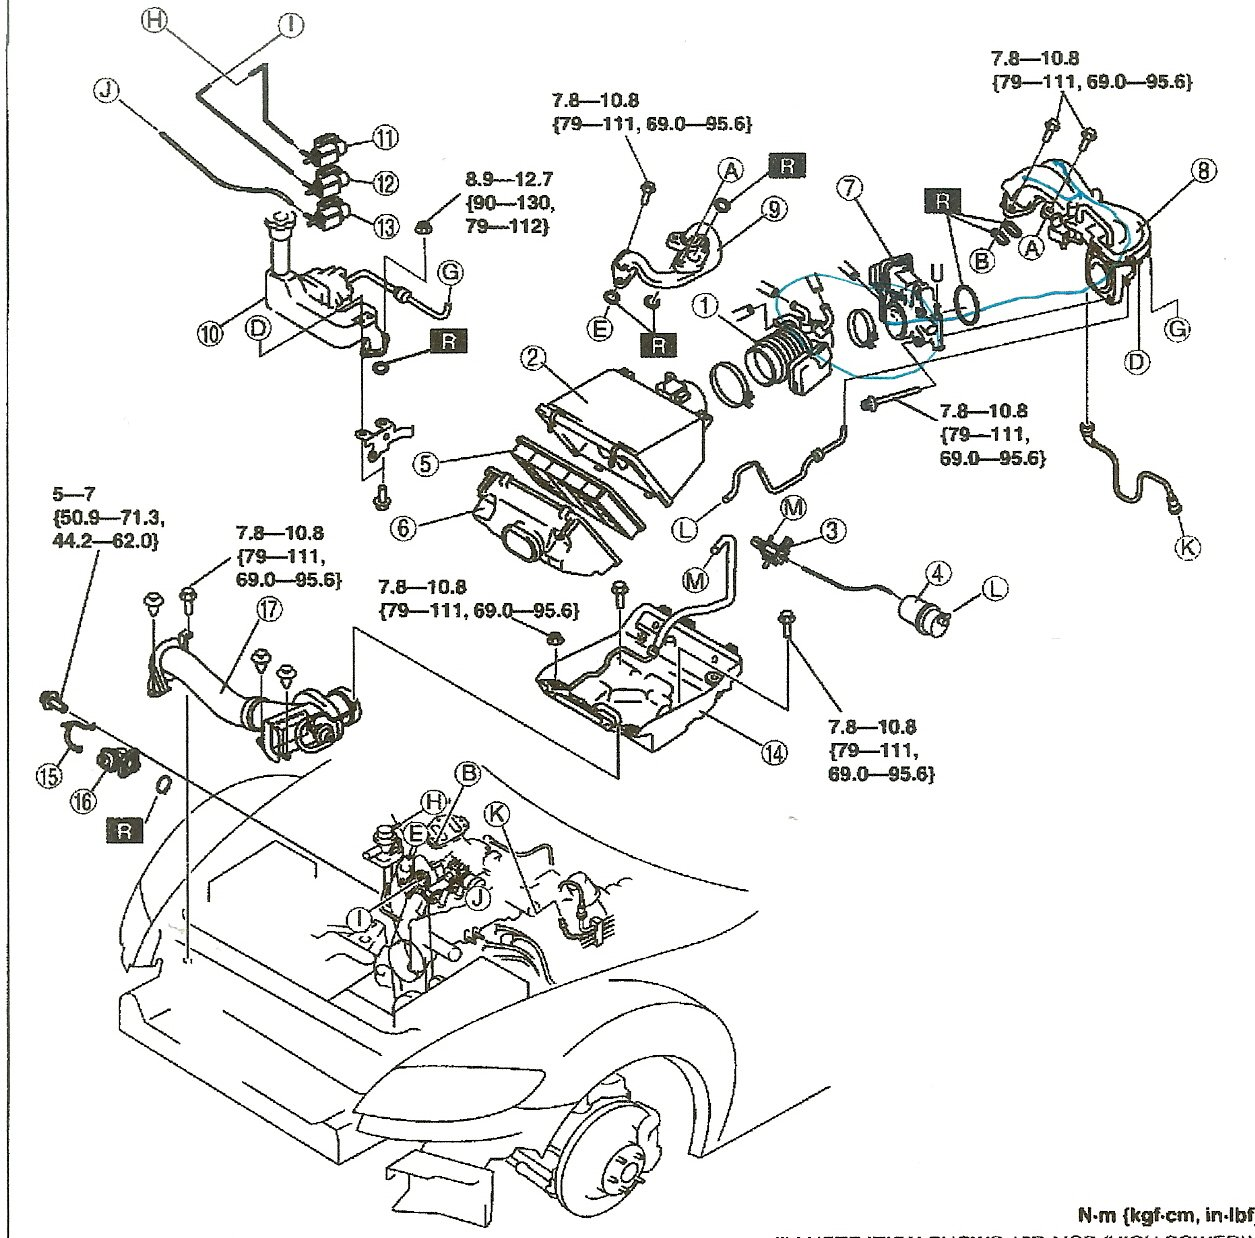 2001 Mazda B3000 Fuel Pump Relay. 2001 Mazda B3000 Fuel Pump Relay. Mazda. Mazda Rx 8 Wiring Diagrams At Justdesktopwallpapers.com